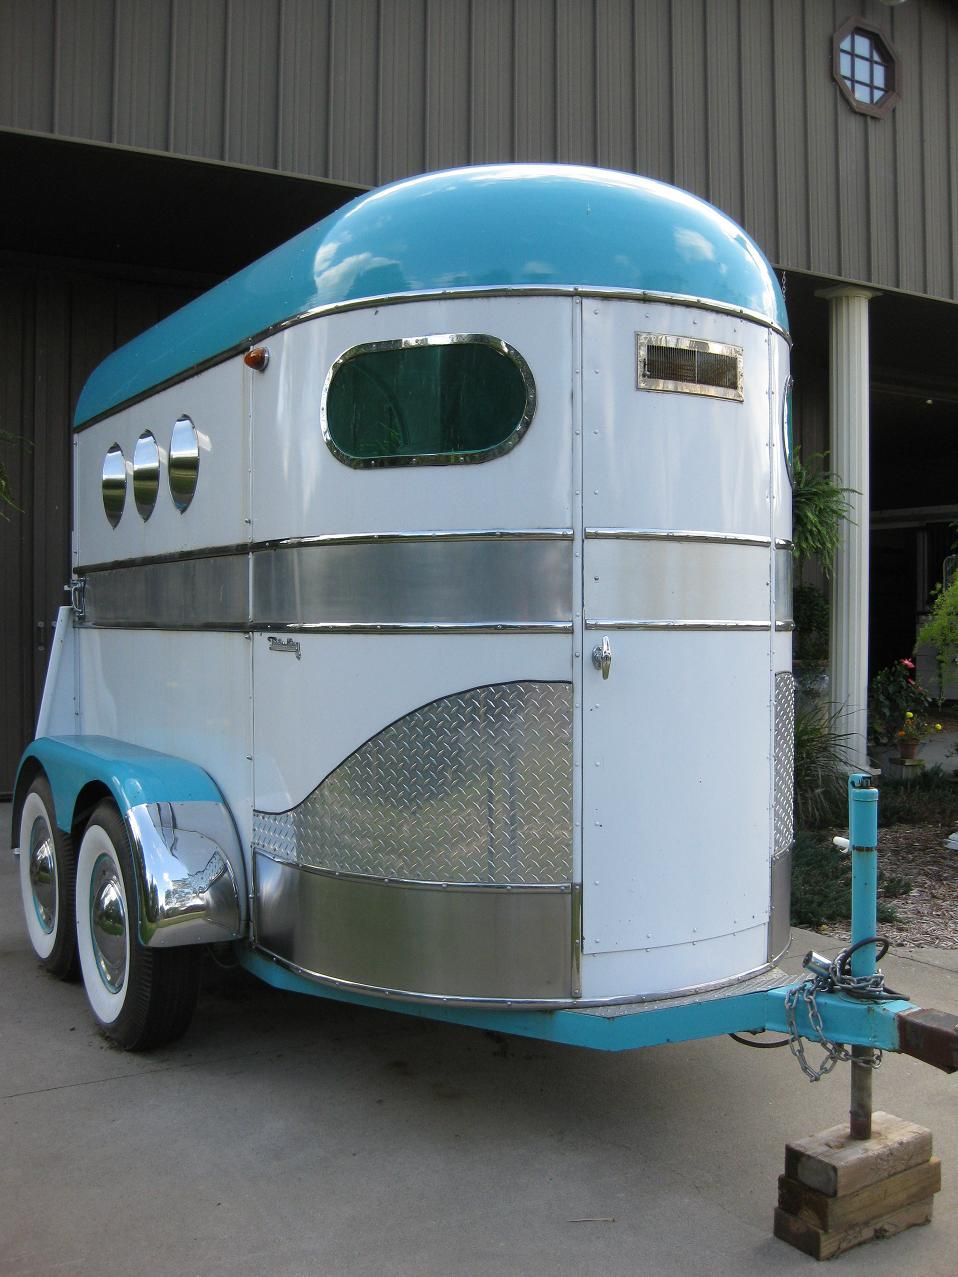 Turquoise And White Horse Trailer I Want To Restore A Two